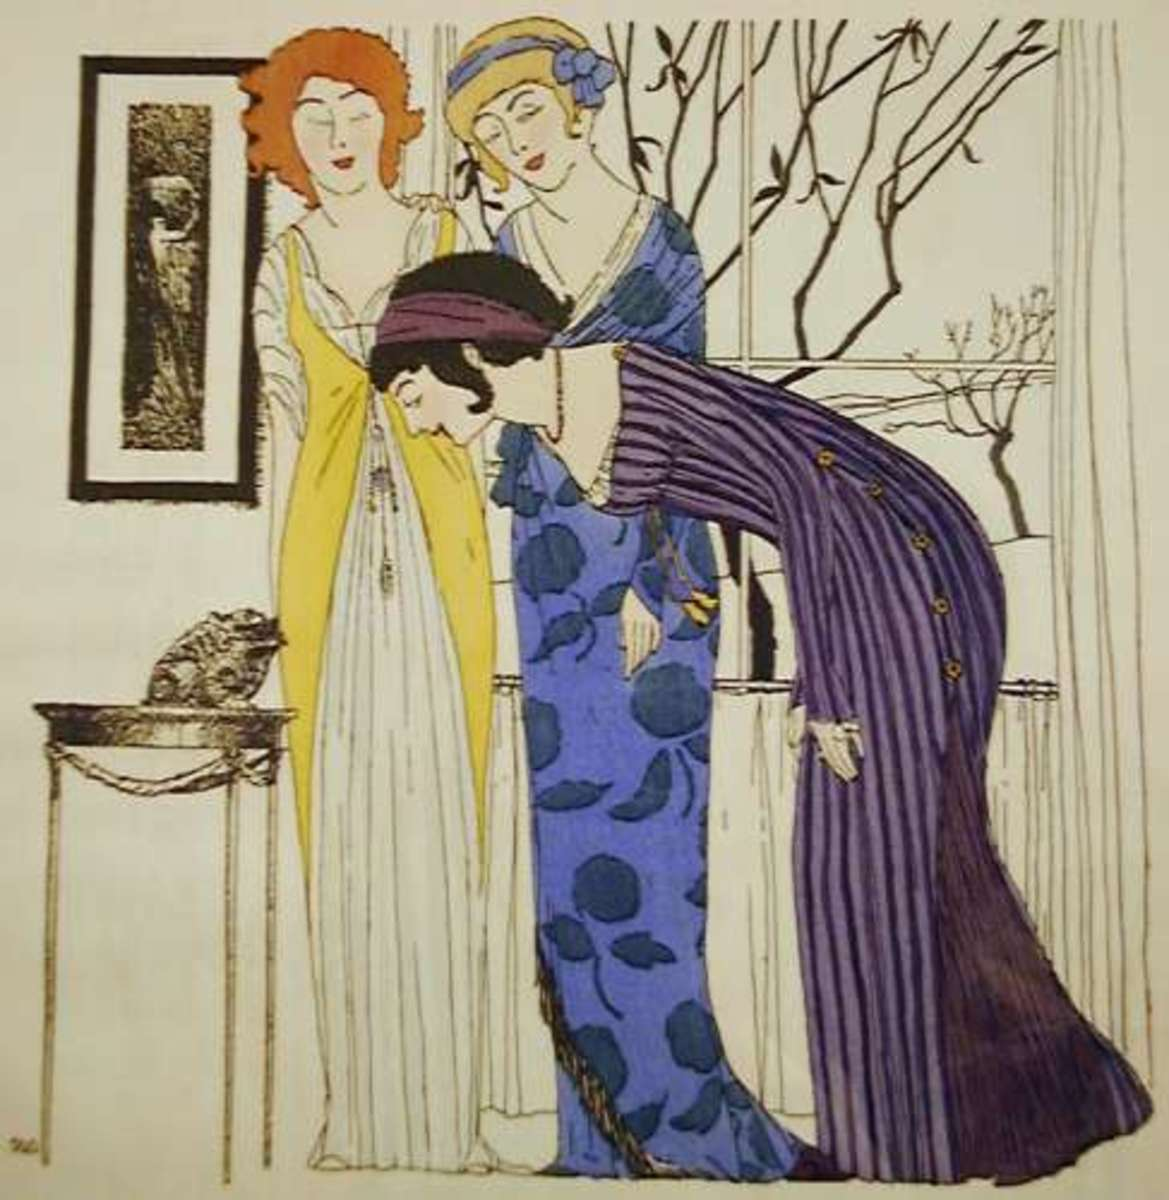 This 1908 illustration by Paul Iribe is from :a Coutoriere Parisienne